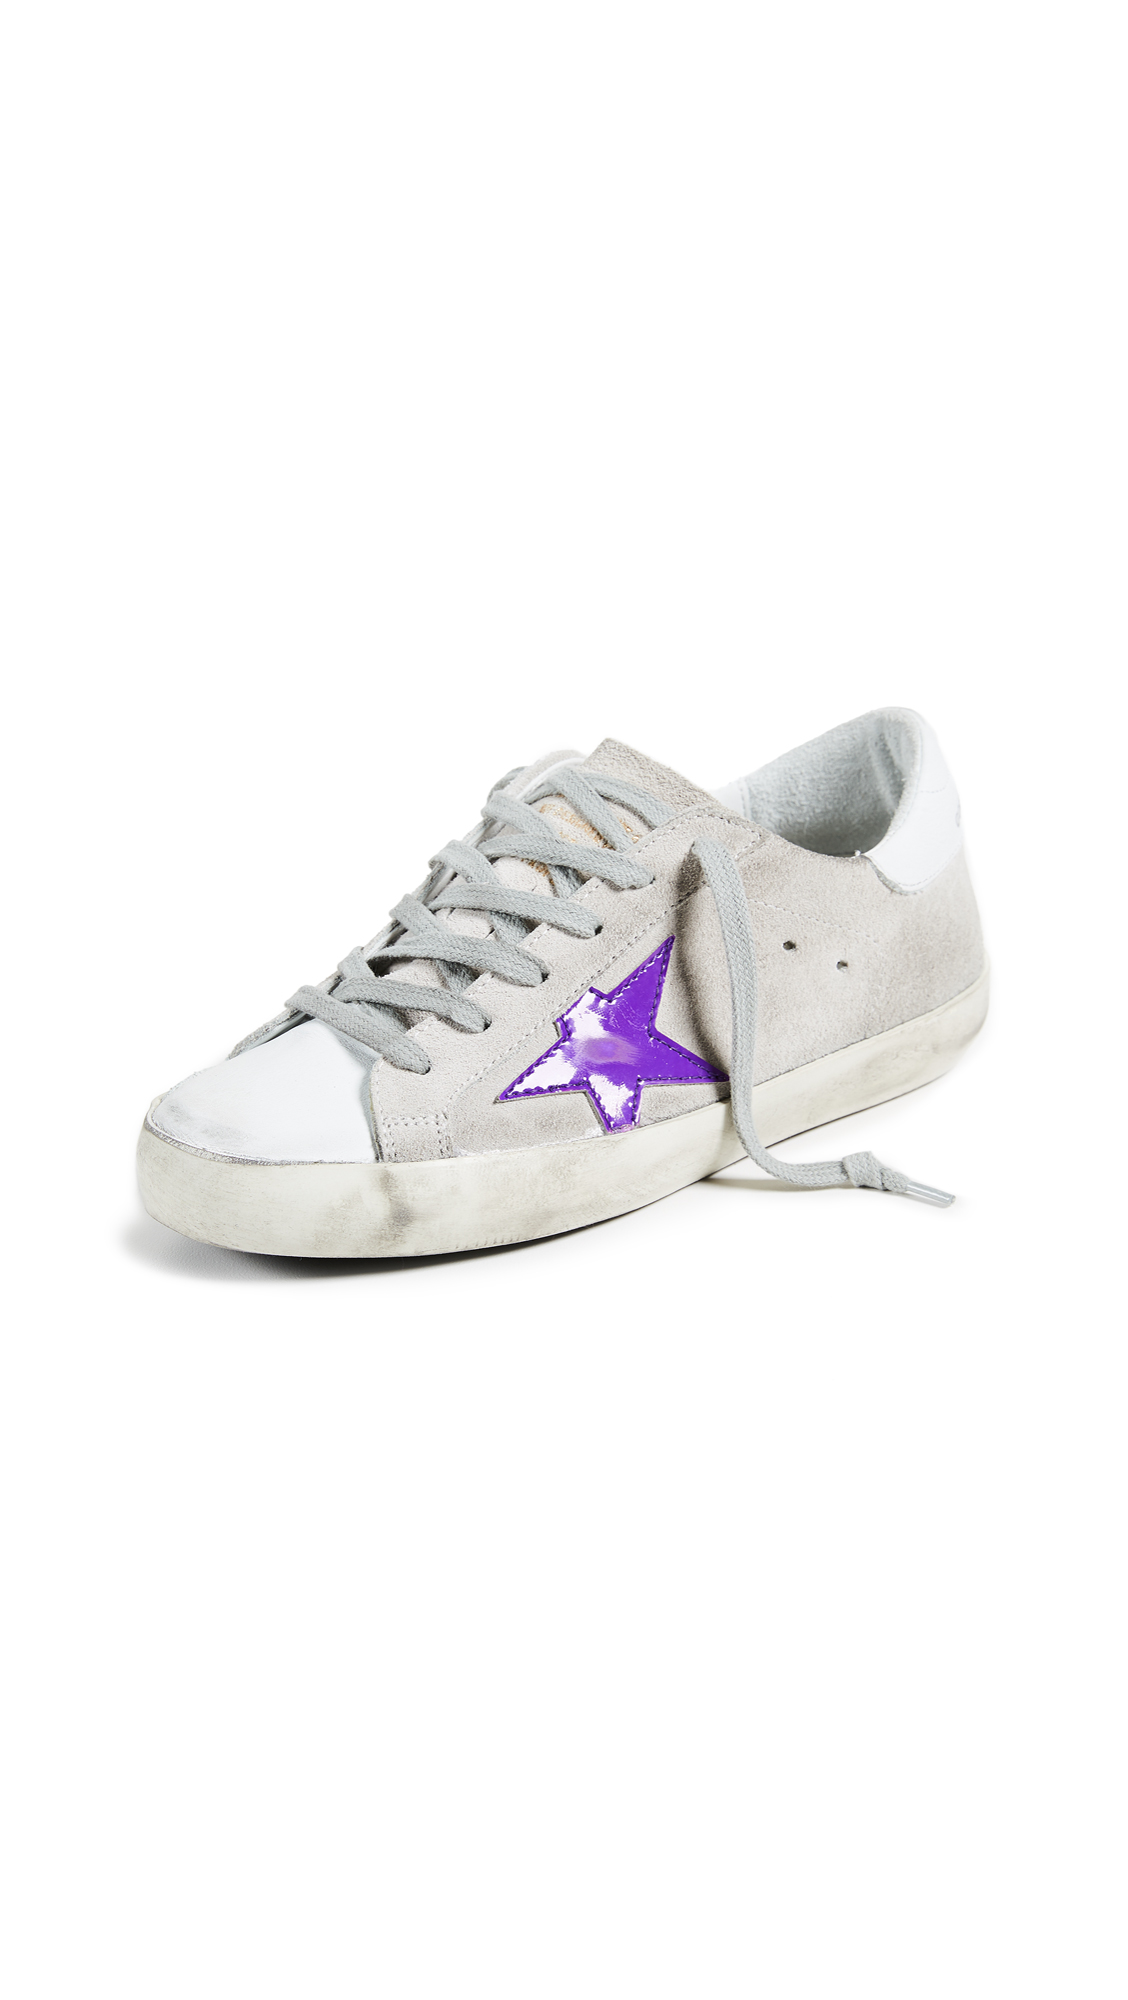 Golden Goose Superstar Sneakers - White/Viola